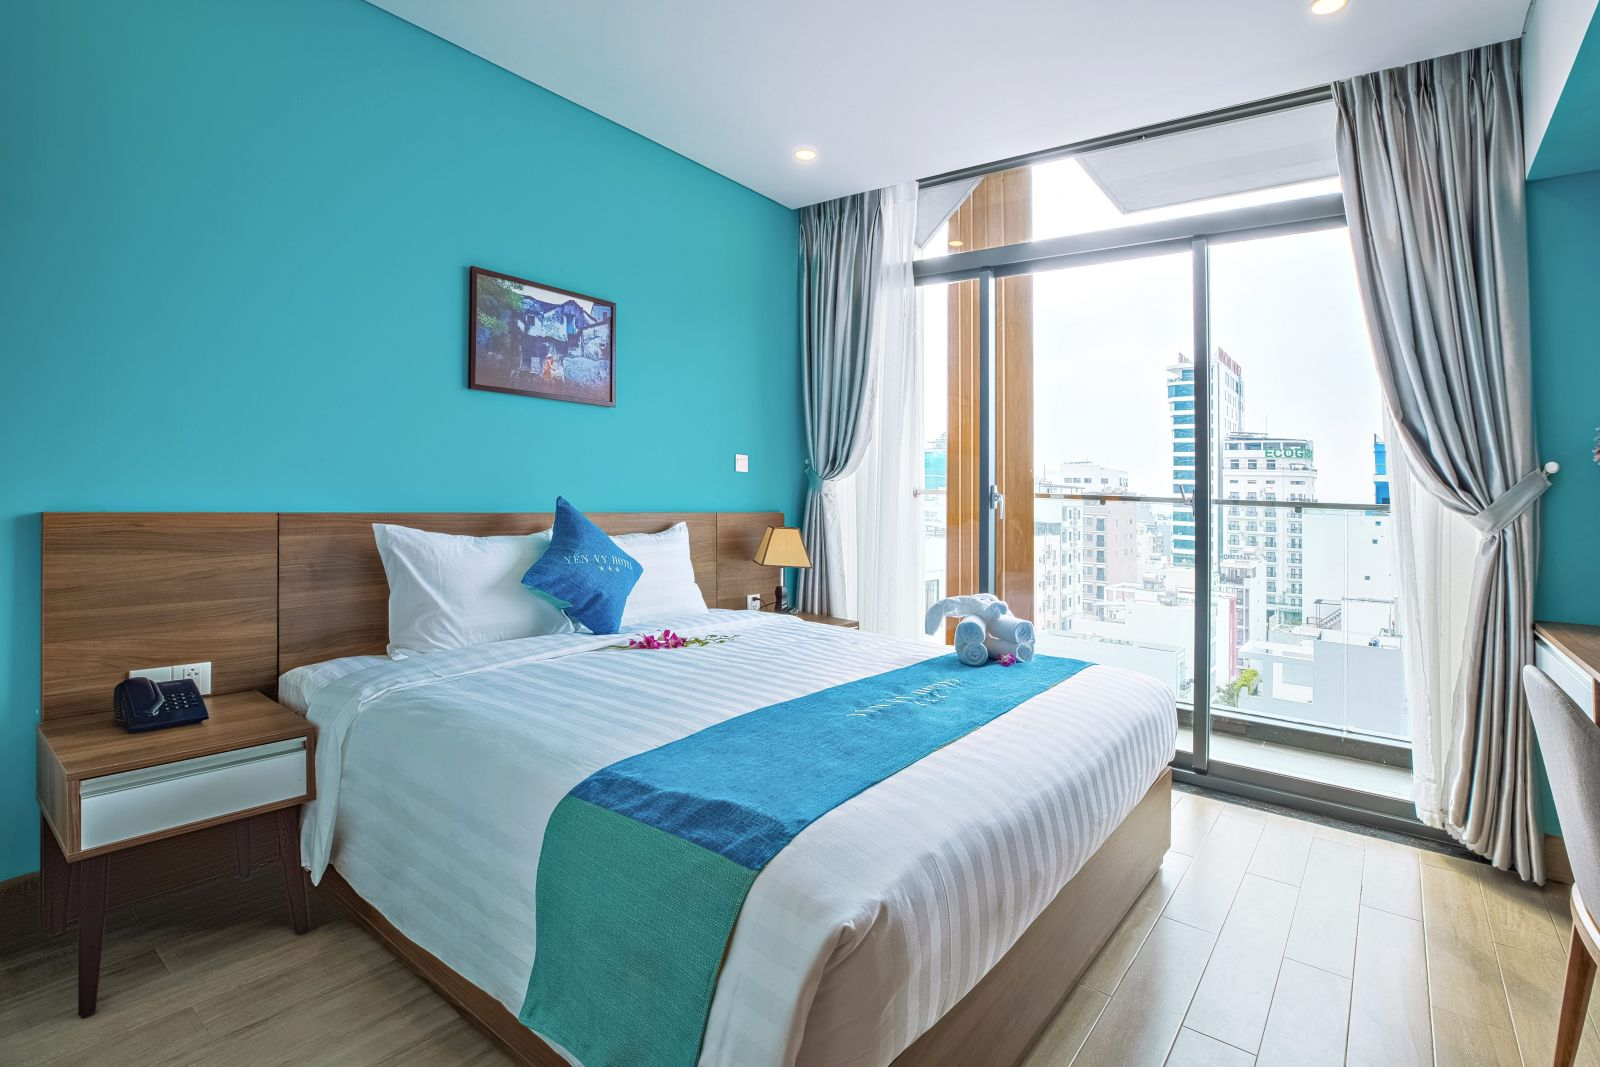 Apartment Room - Yến Vy Hotel